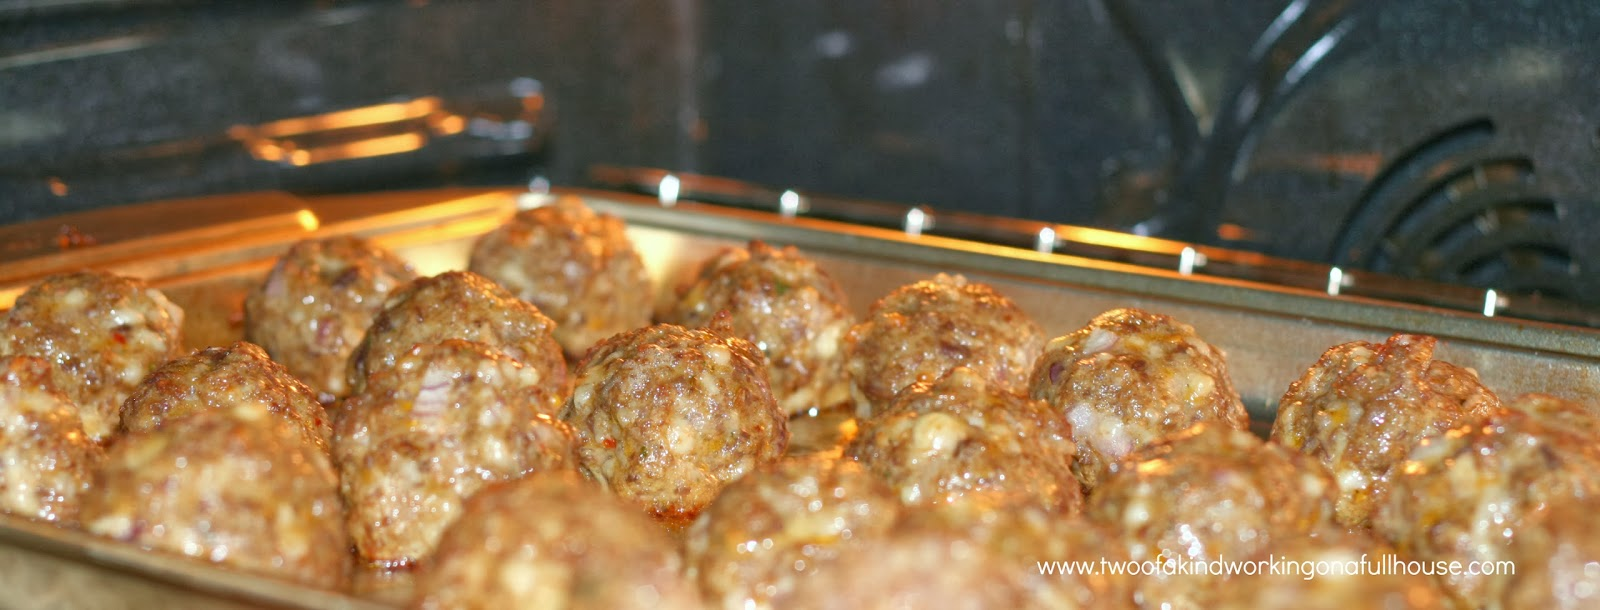 Ultimate Party Meatballs Recipe | Two of a kind, working on a full ...